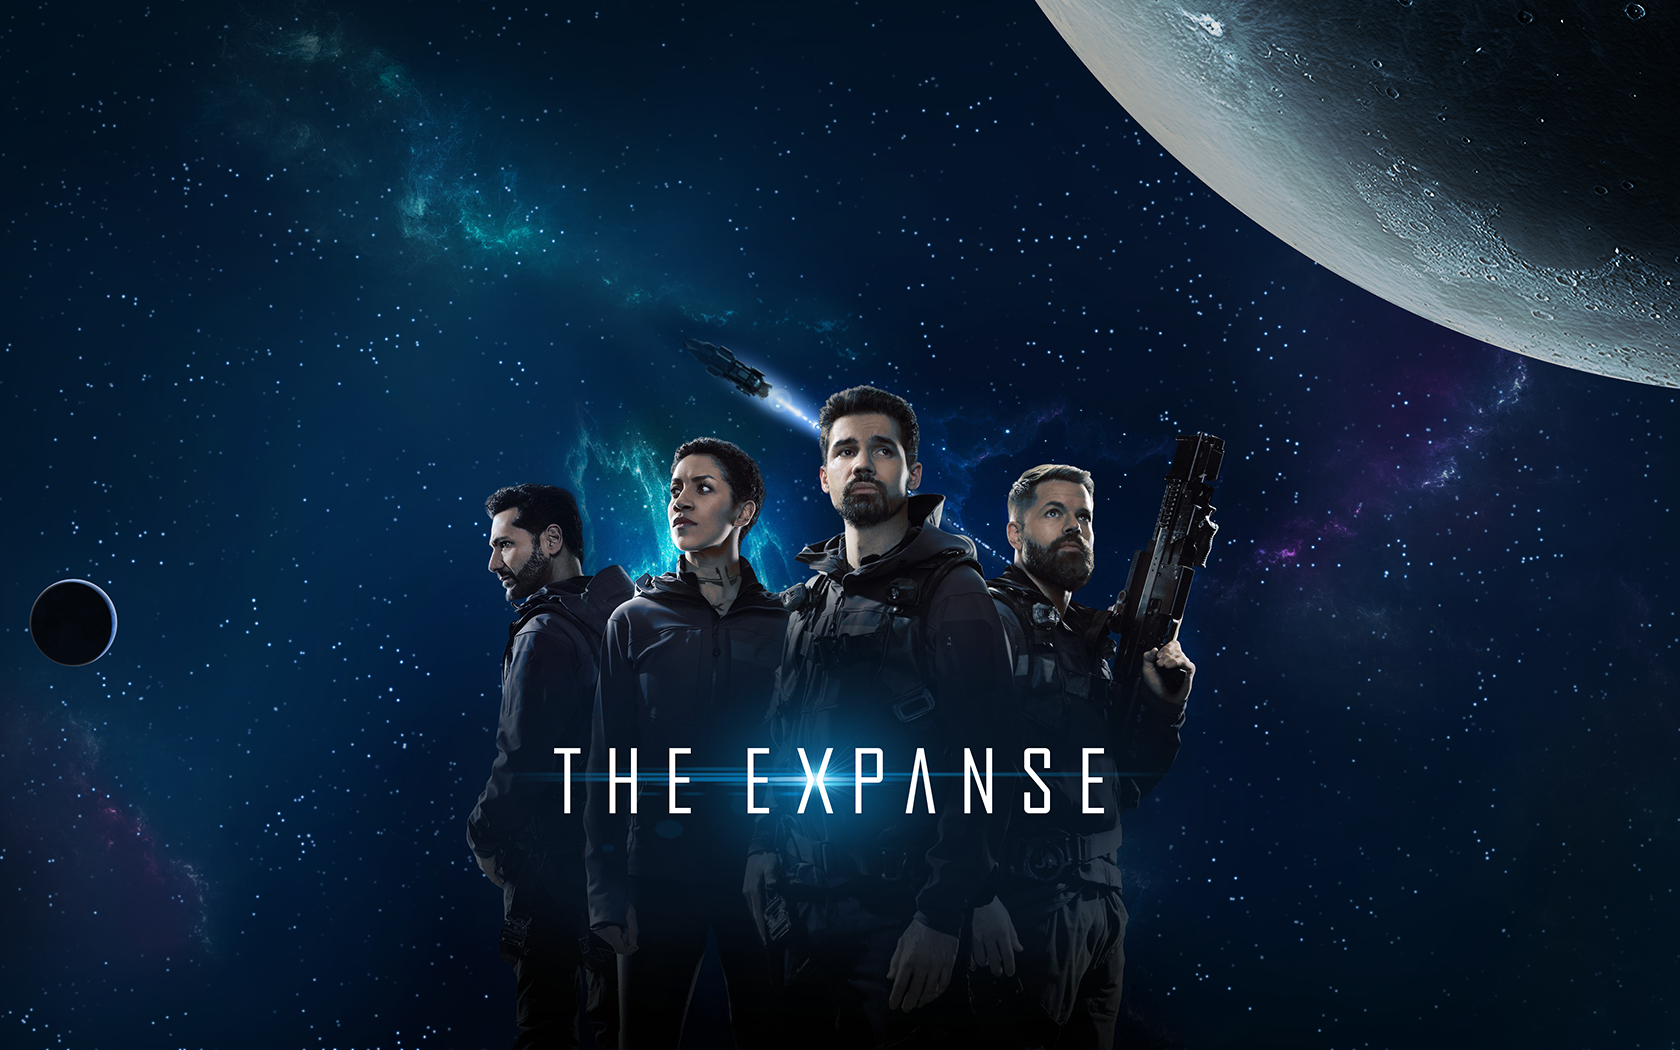 the expanse season 5 cast